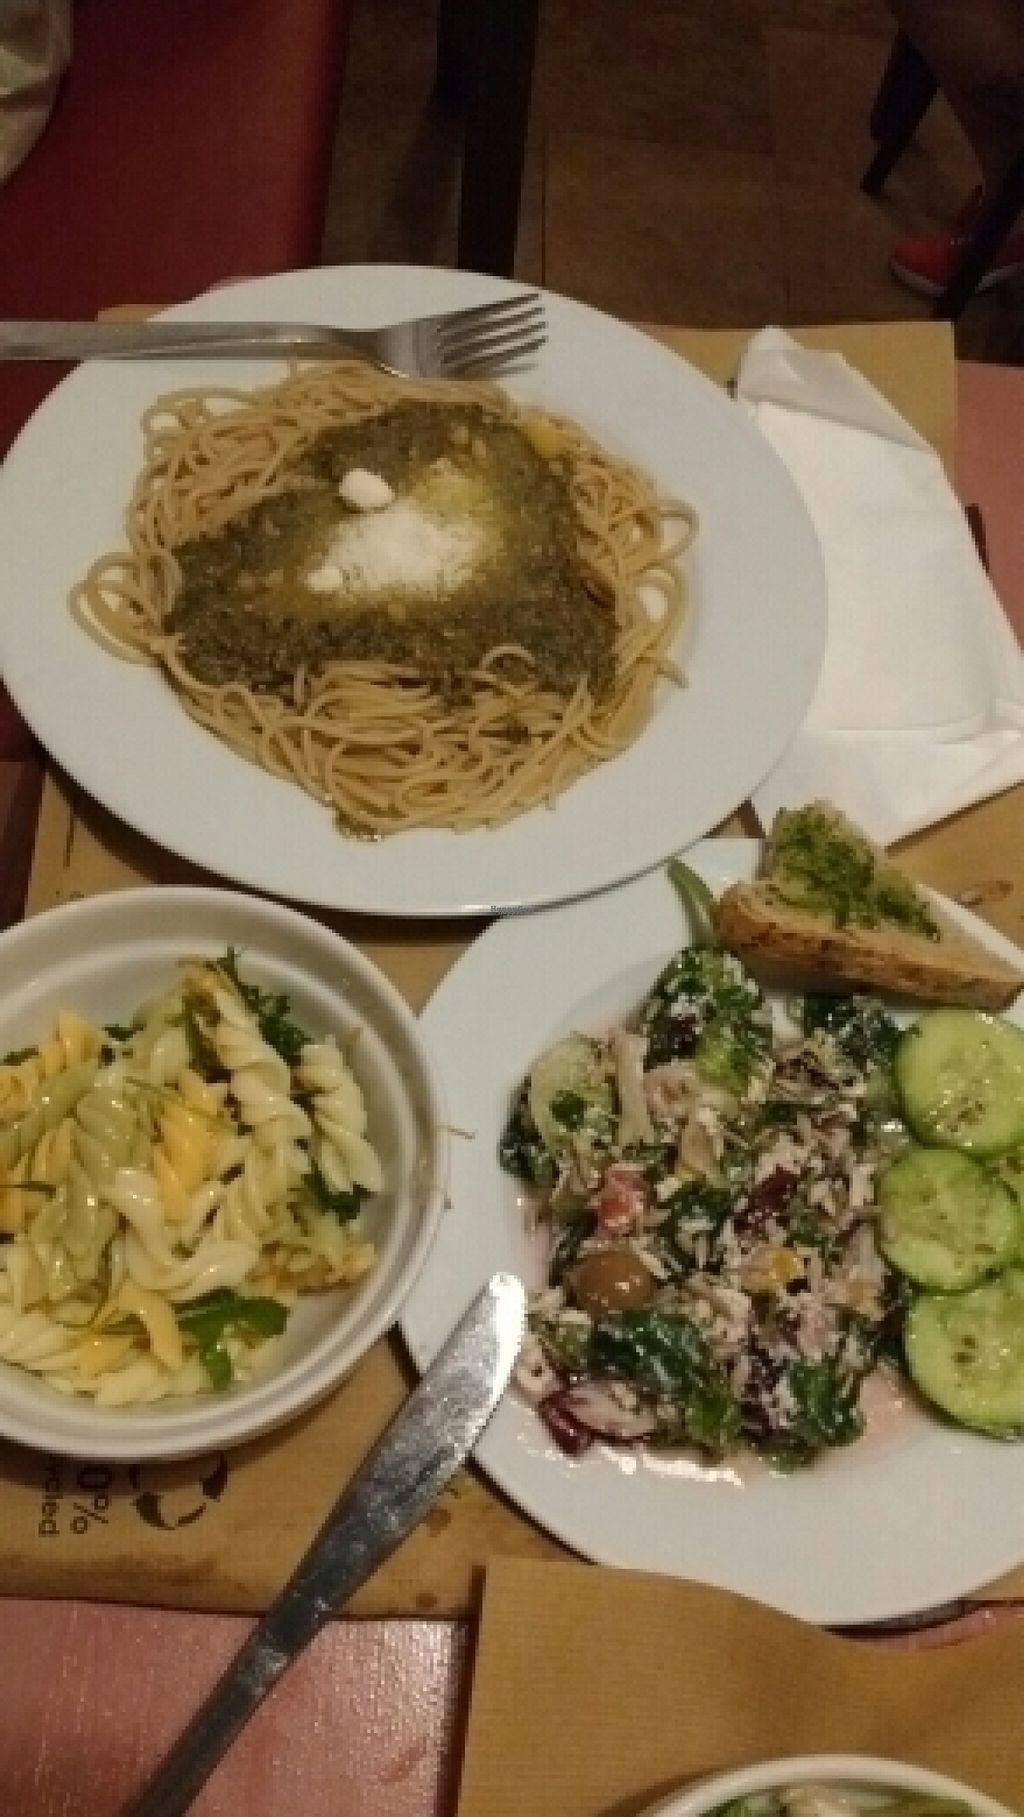 "Photo of Biocenter Restaurant Vegetaria  by <a href=""/members/profile/CynthiaterHorst"">CynthiaterHorst</a> <br/>Spaghetti with vegan parmesan and salad from the salad buffet bar <br/> August 4, 2016  - <a href='/contact/abuse/image/1105/165259'>Report</a>"